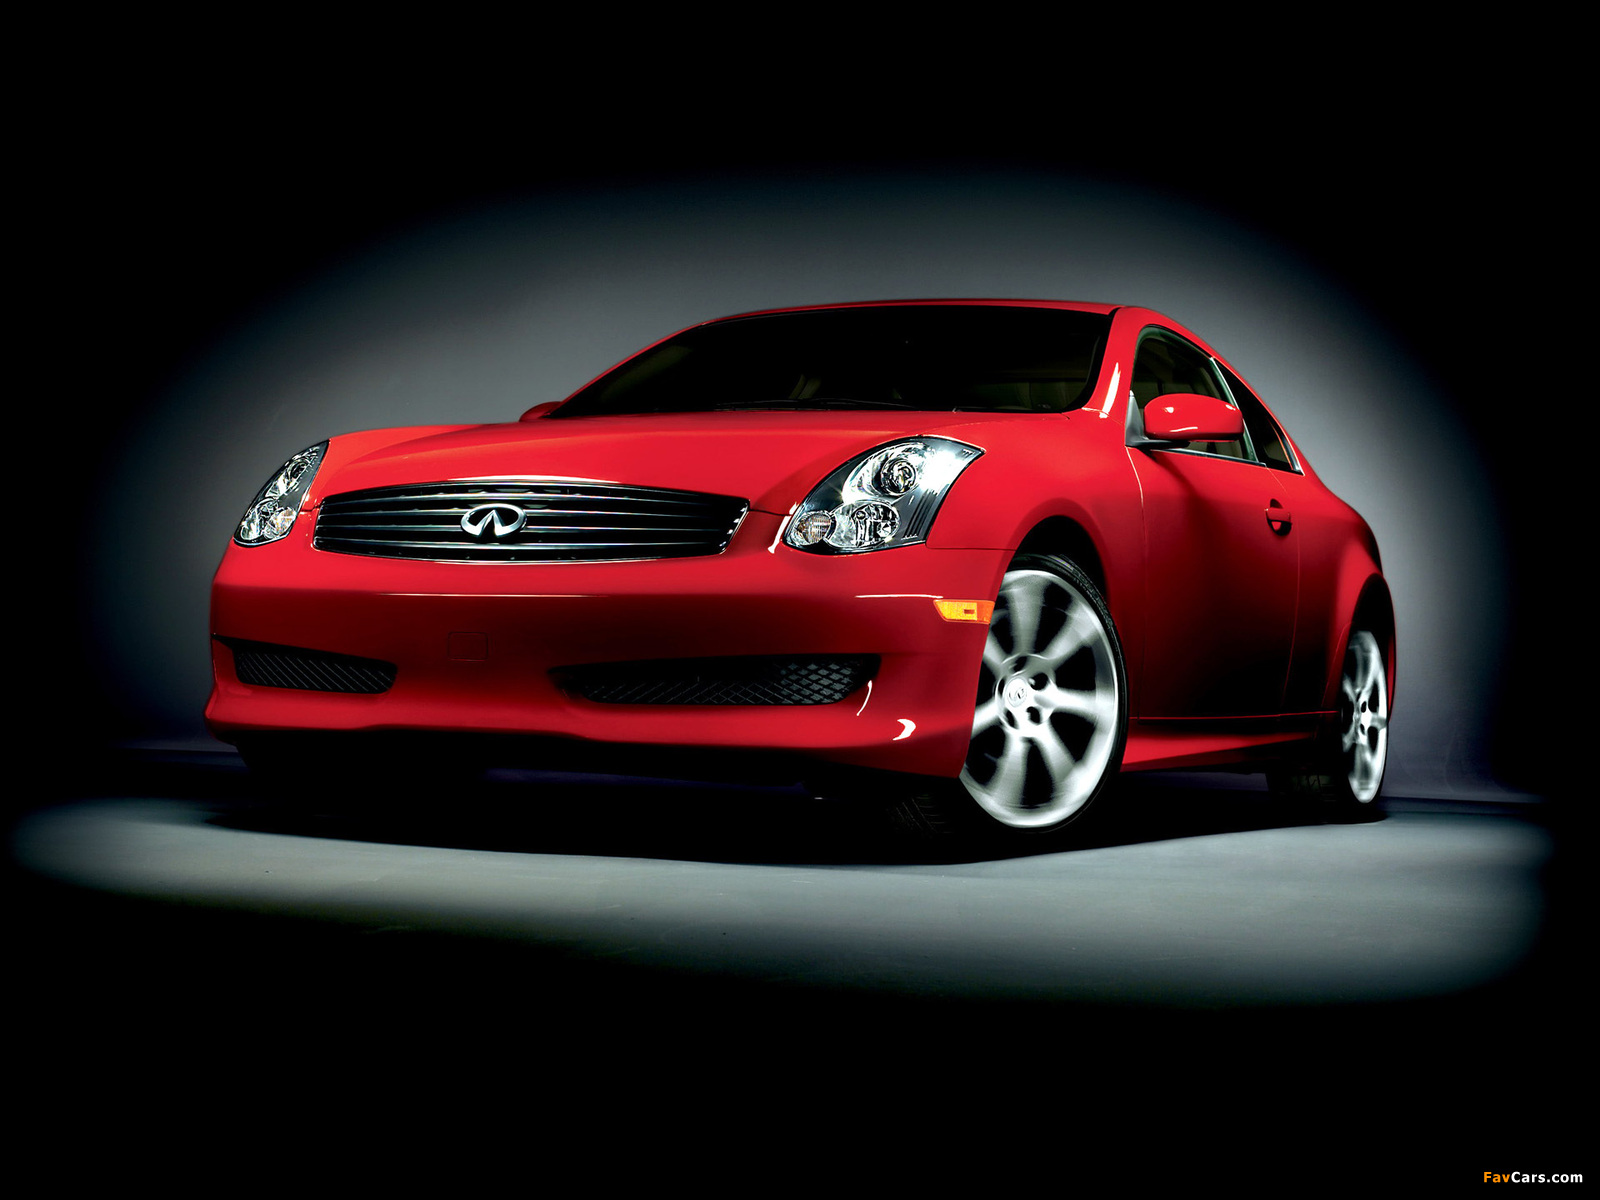 2005 Infiniti G35 Coupe >> Infiniti G35 Coupe 2005–07 images (1600x1200)